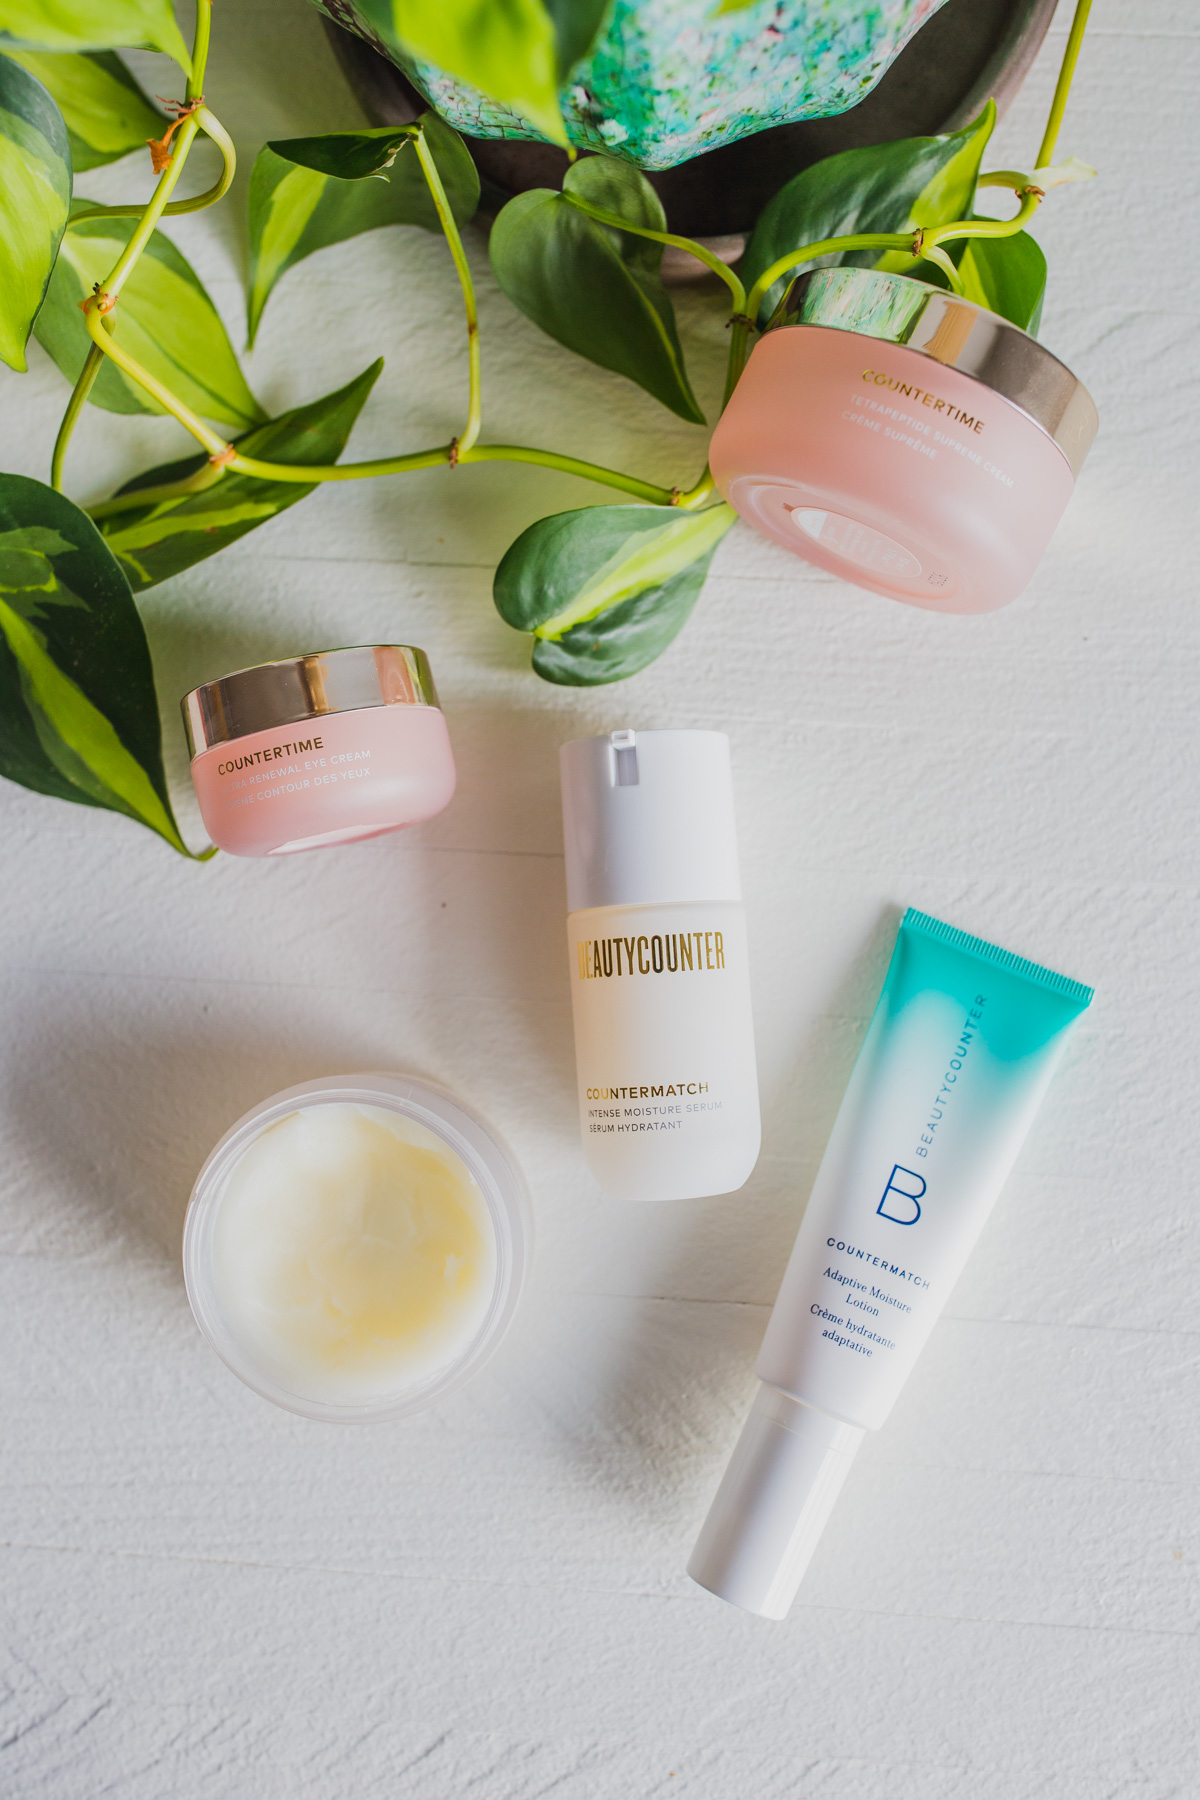 Beautycounter Morning & Night Skincare Routine #skincare #safeskincare #cleanbeauty #healthyliving #naturalskincare